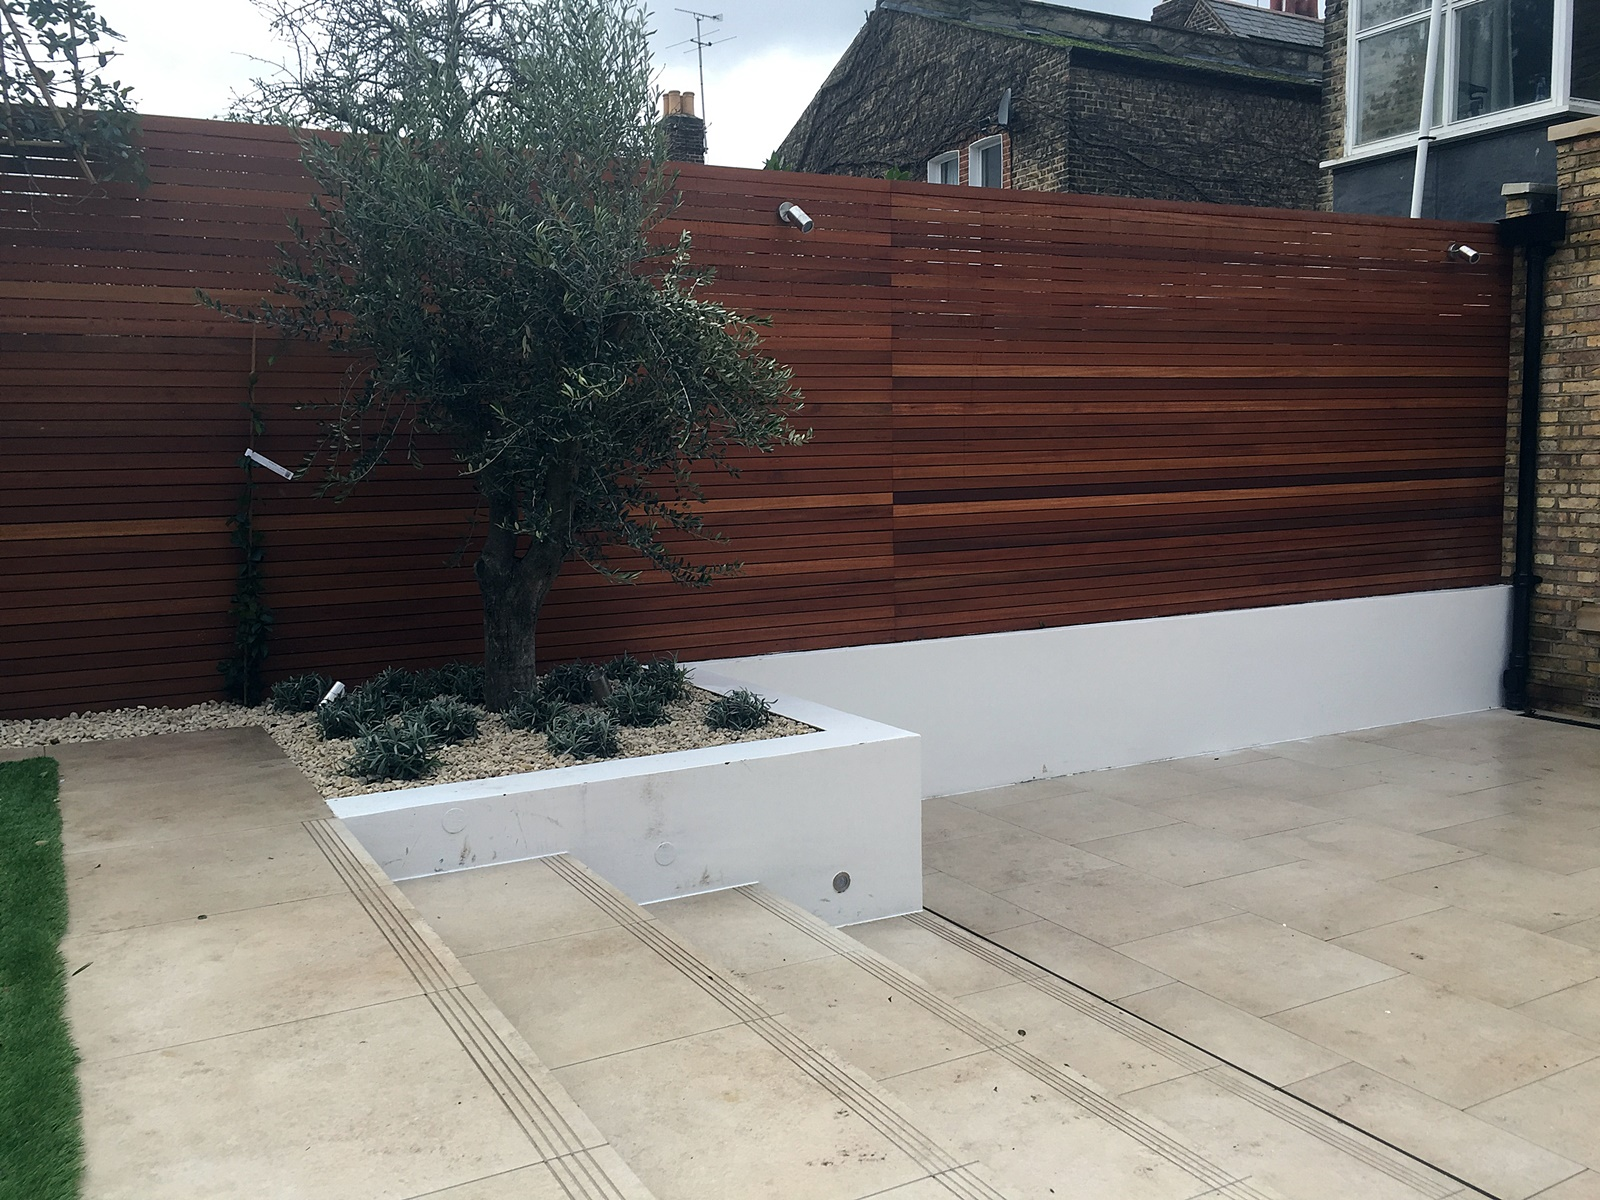 Travertine path London design wood garden wall trellis Clapham Wandsworth Putney